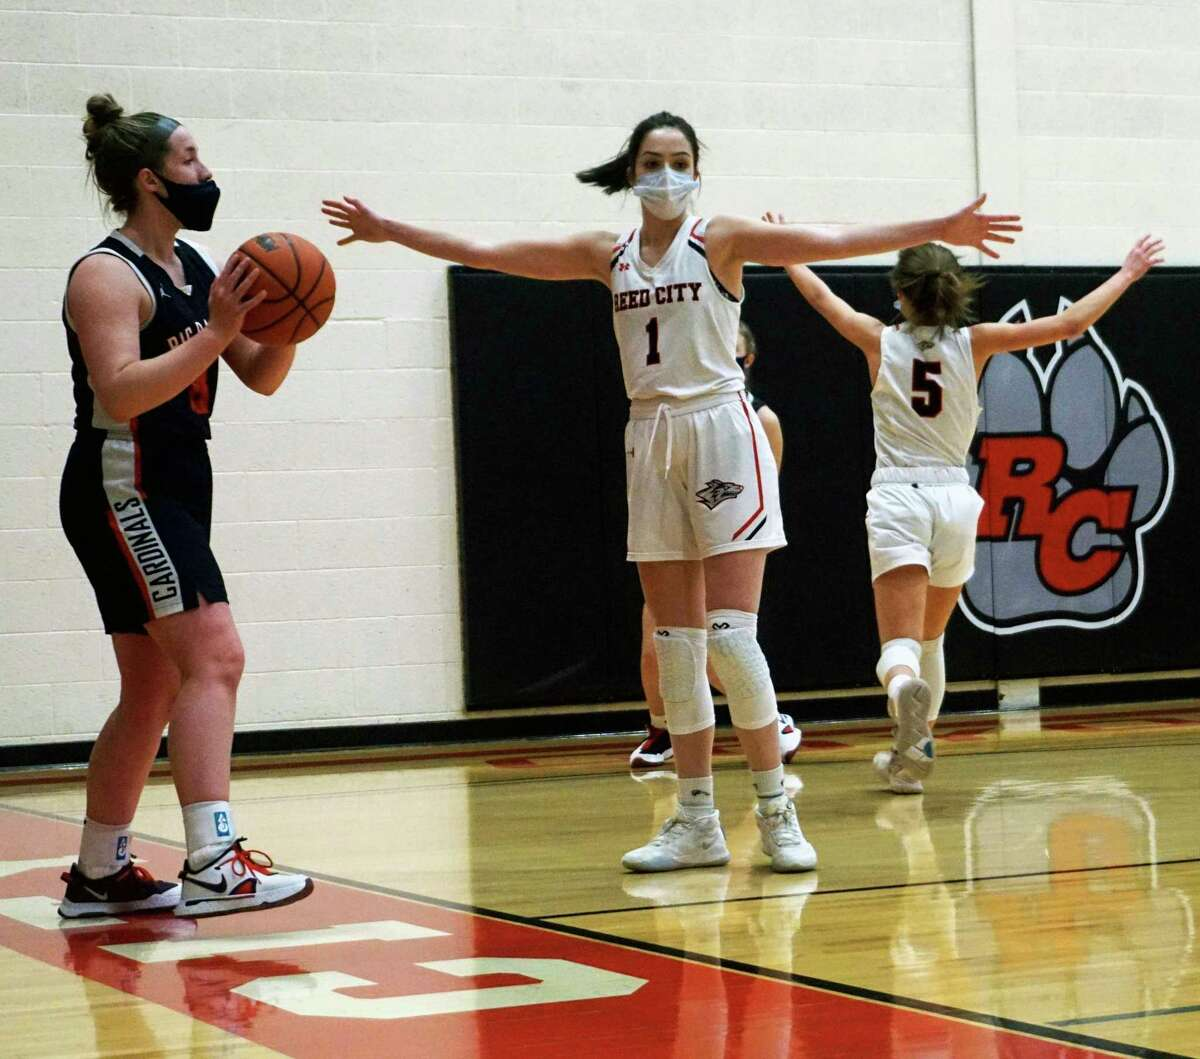 Big Rapids sophomore Rylie Haist (left) looks to inbound the ball during a game on Tuesday night as Reed City's (name) gets ready to defend. (Pioneer photo/Joe Judd)